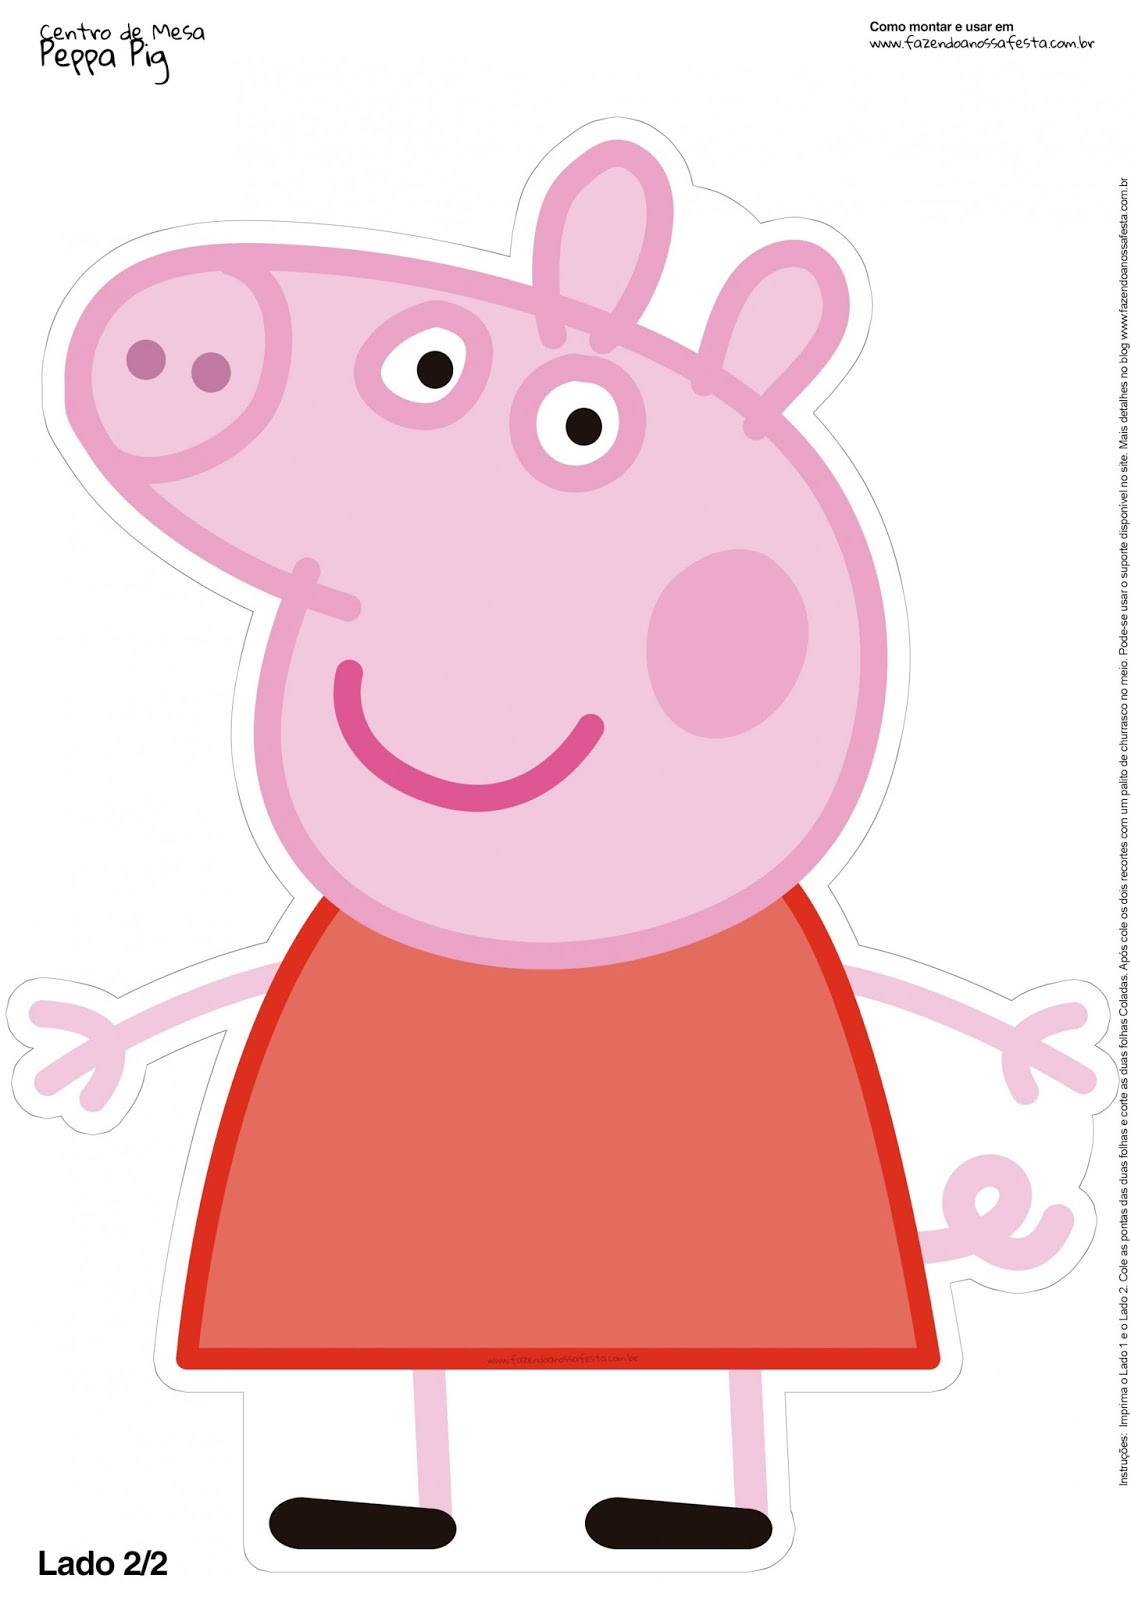 graphic relating to Pig Printable known as Peppa Pig Cost-free Printable Centerpieces. - Oh My Fiesta! in just